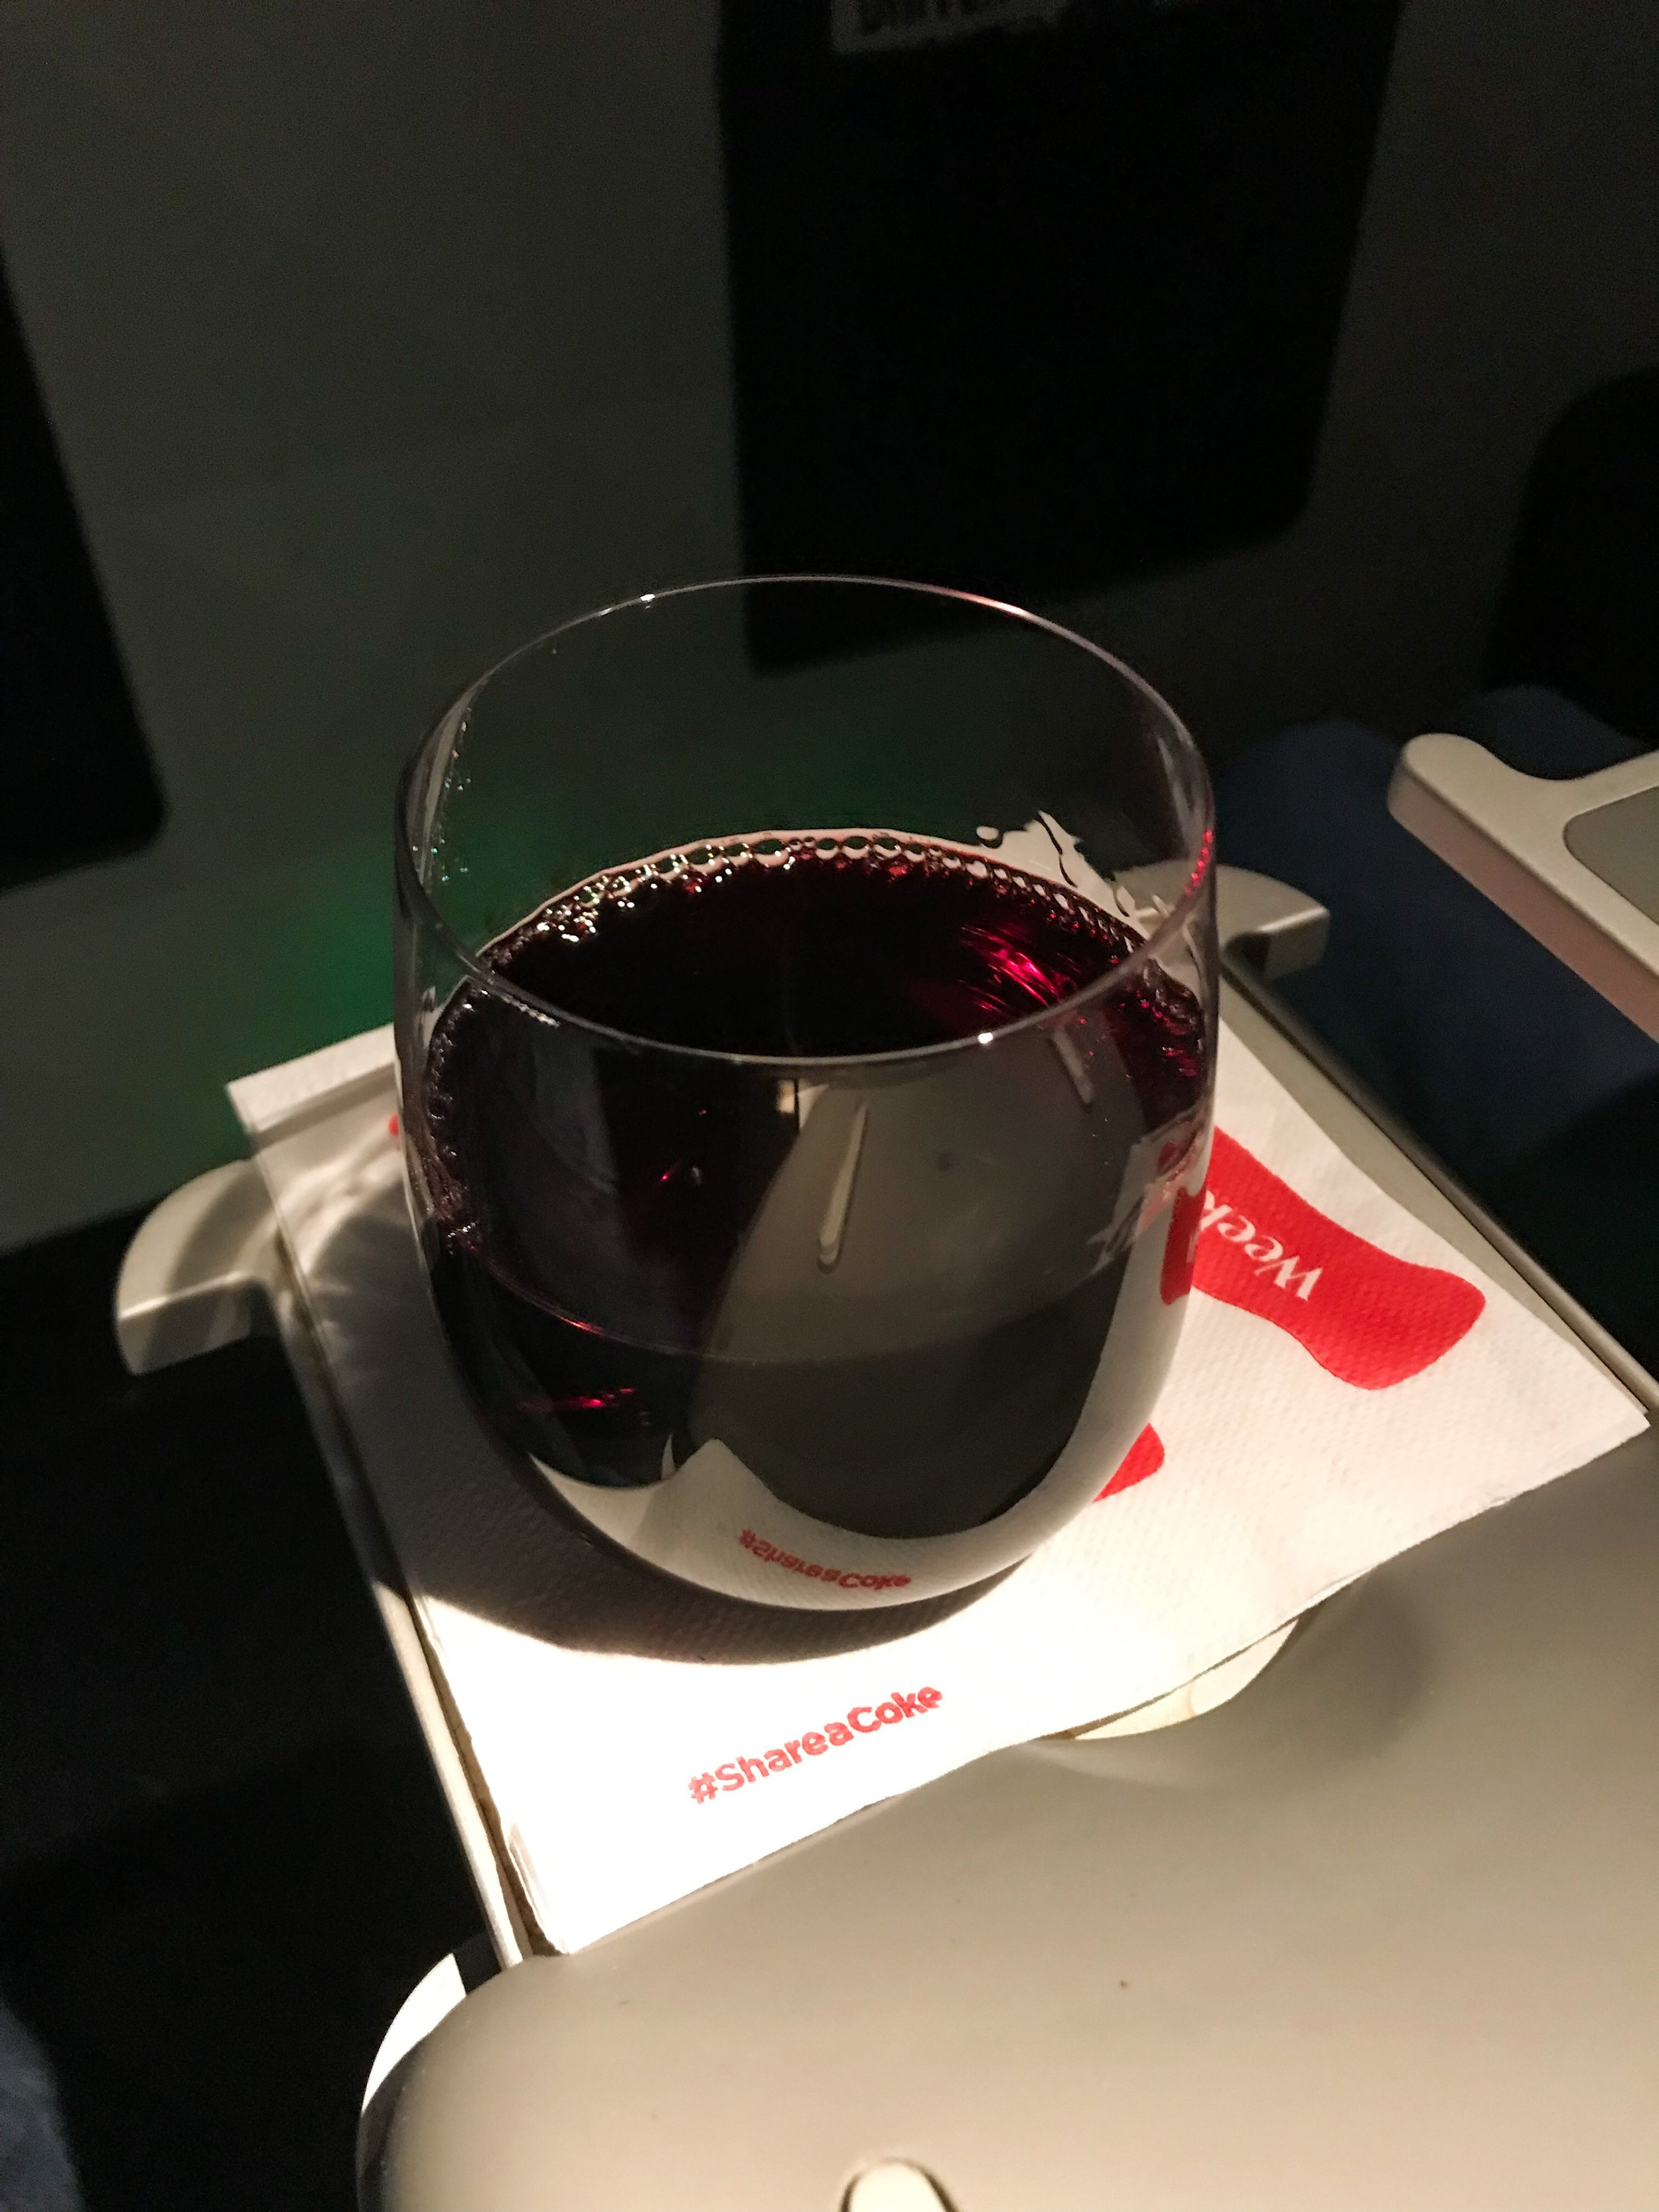 Delta serves pre-dinner drinks soon after takeoff. The flight attendants came around several times after dinner as well asking if I wanted anything else. The ERJ-175 features a small pull-out table if you don't want to use the in-seat tray table.